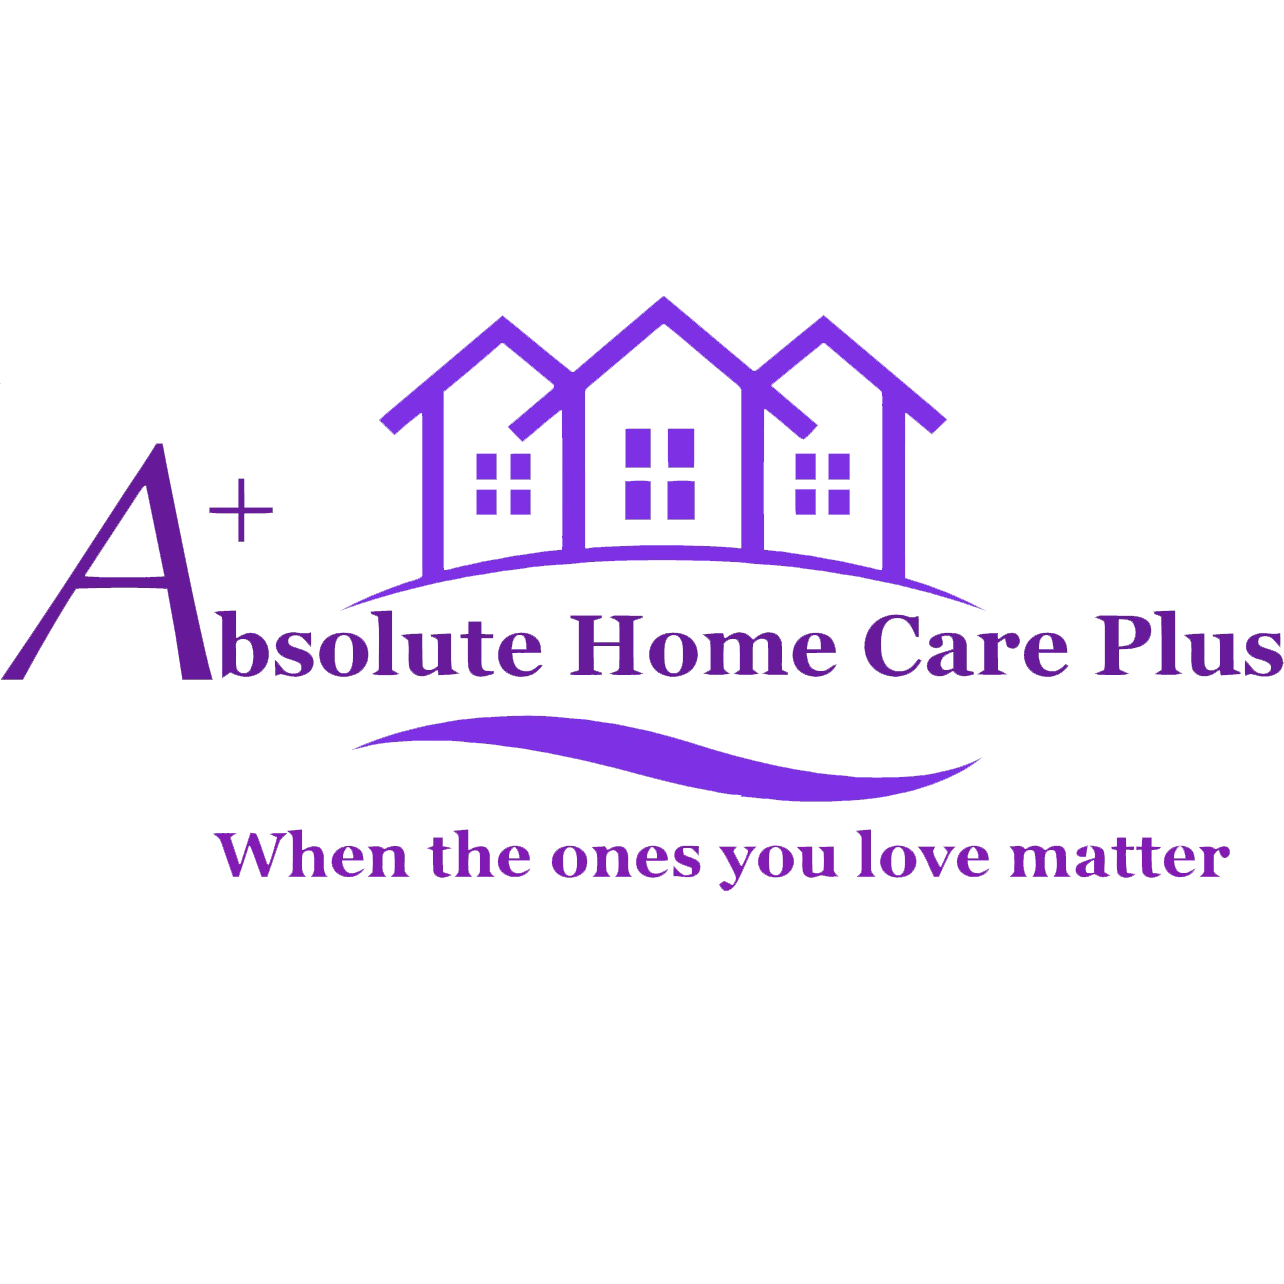 Absolute Home Care Plus image 2